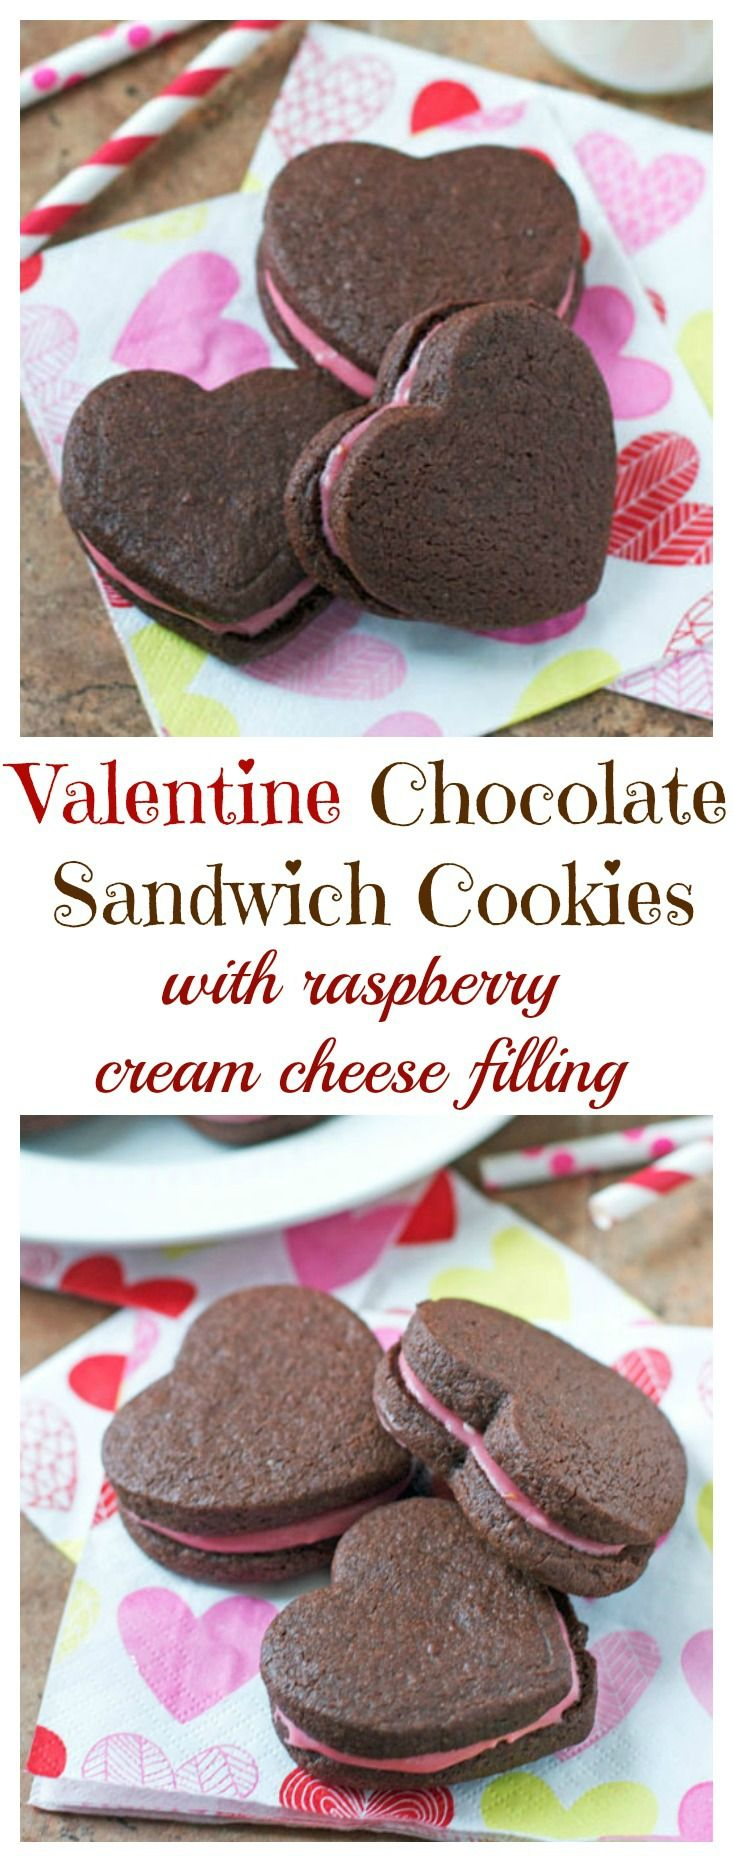 Chocolate Heart Sandwich Cookies with Raspberry Cream Cheese Filling